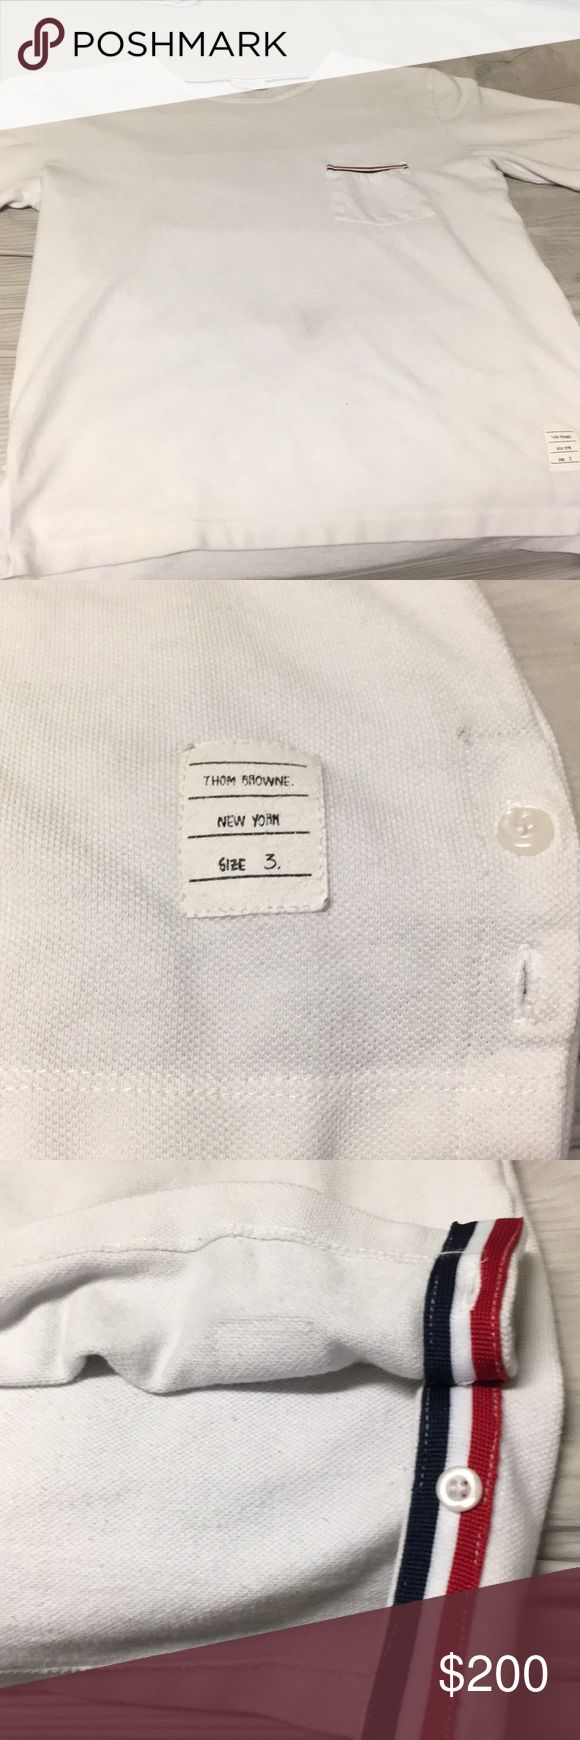 Thom Browne T-Shirt Top tier designer T-Shirt with an original price of $350 commonly worn in Europe or Asia Thom Browne Shirts Tees - Short Sleeve